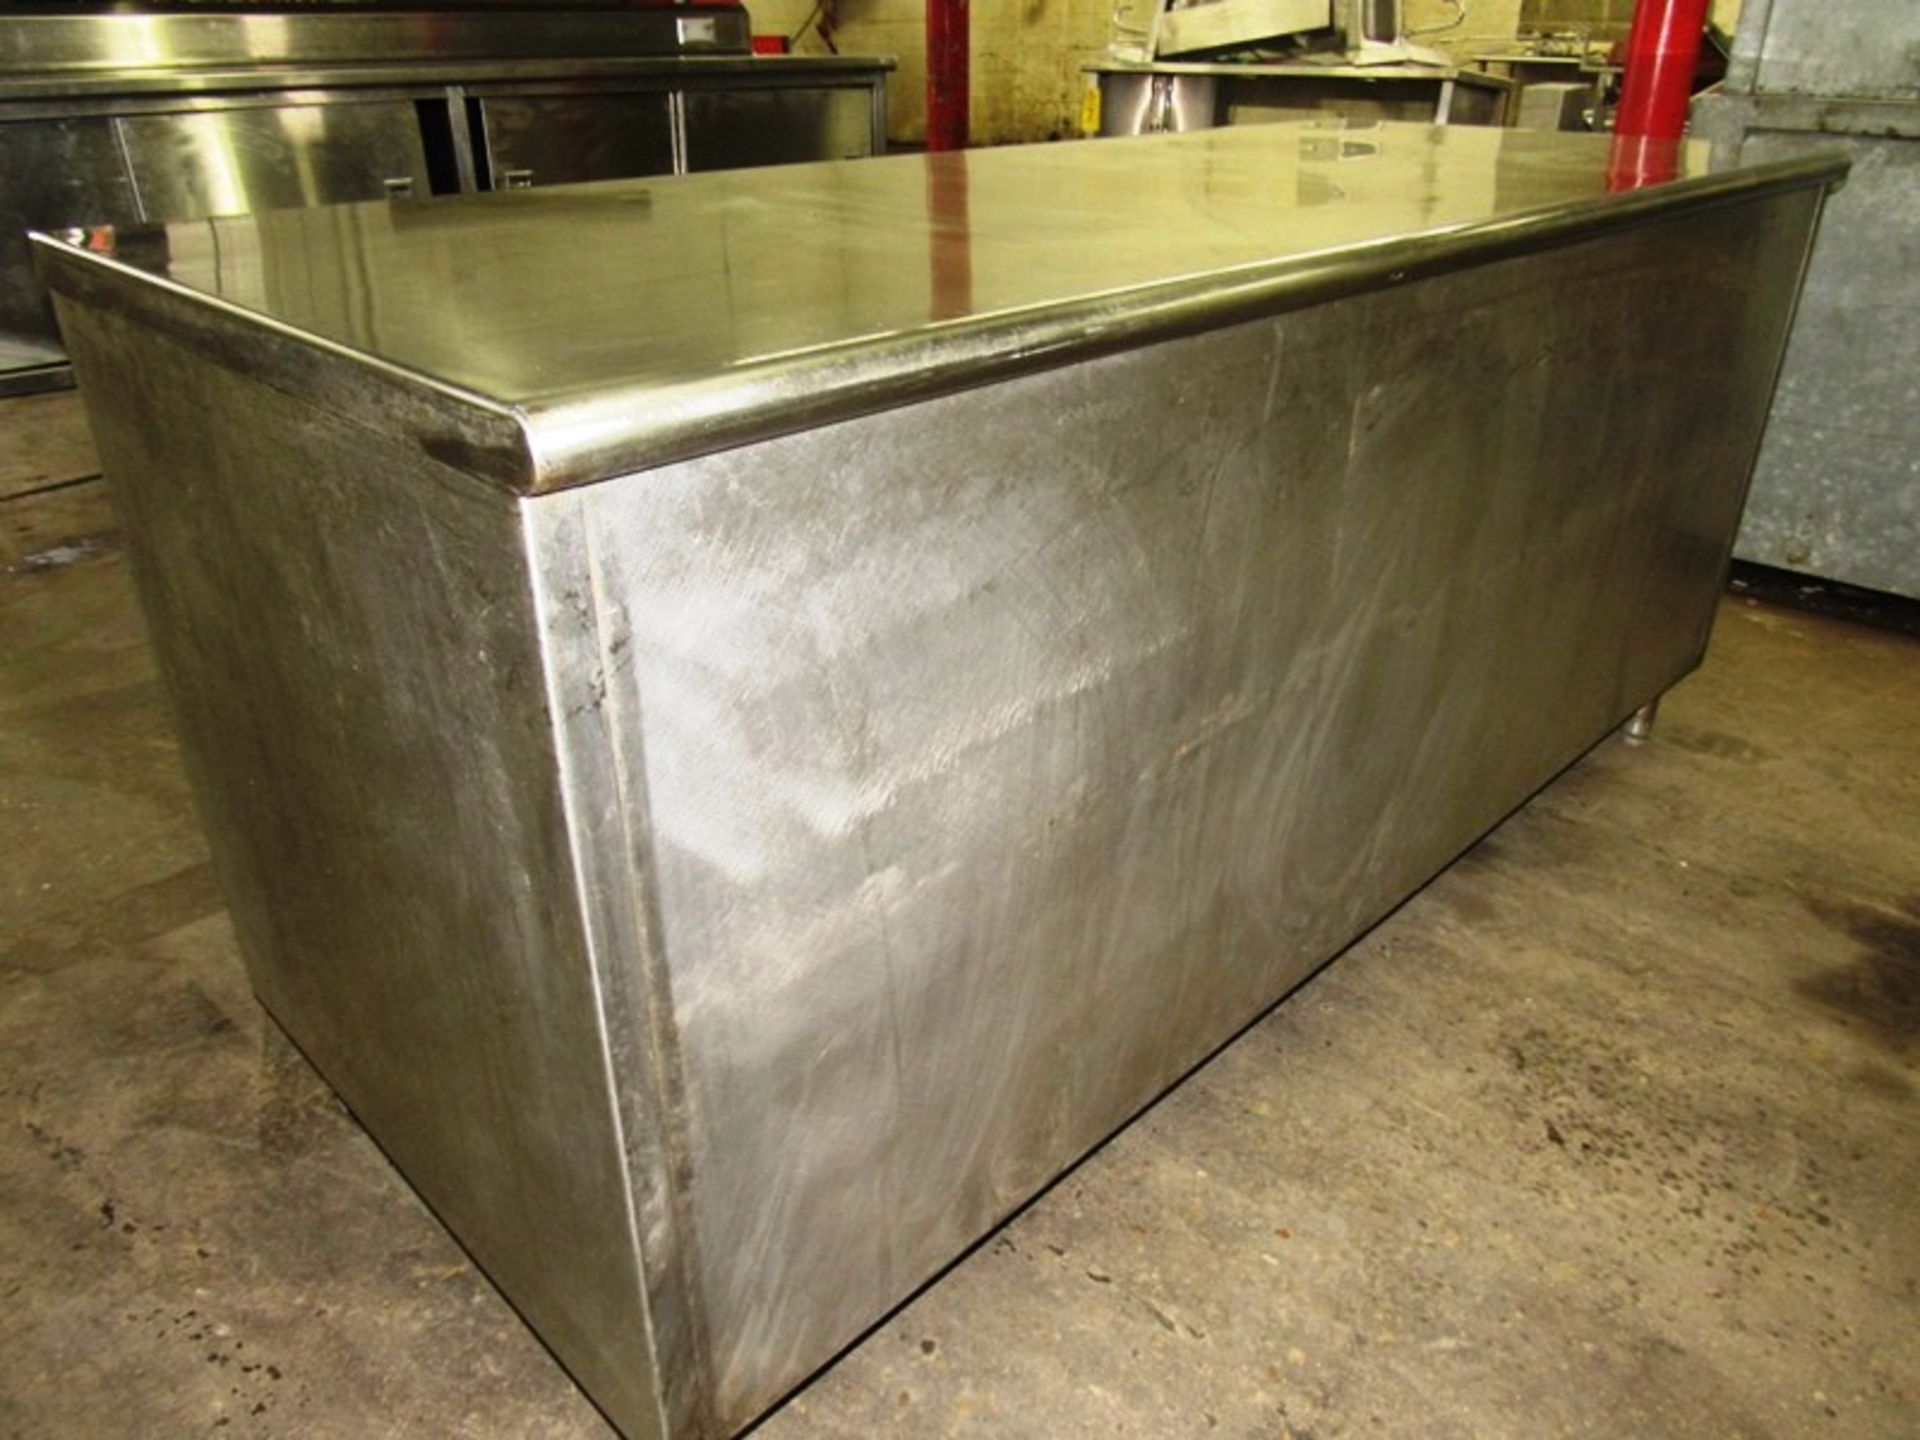 "Stainless Steel Cabinet, 30"" W X 6' L X 36"" T - Image 3 of 3"